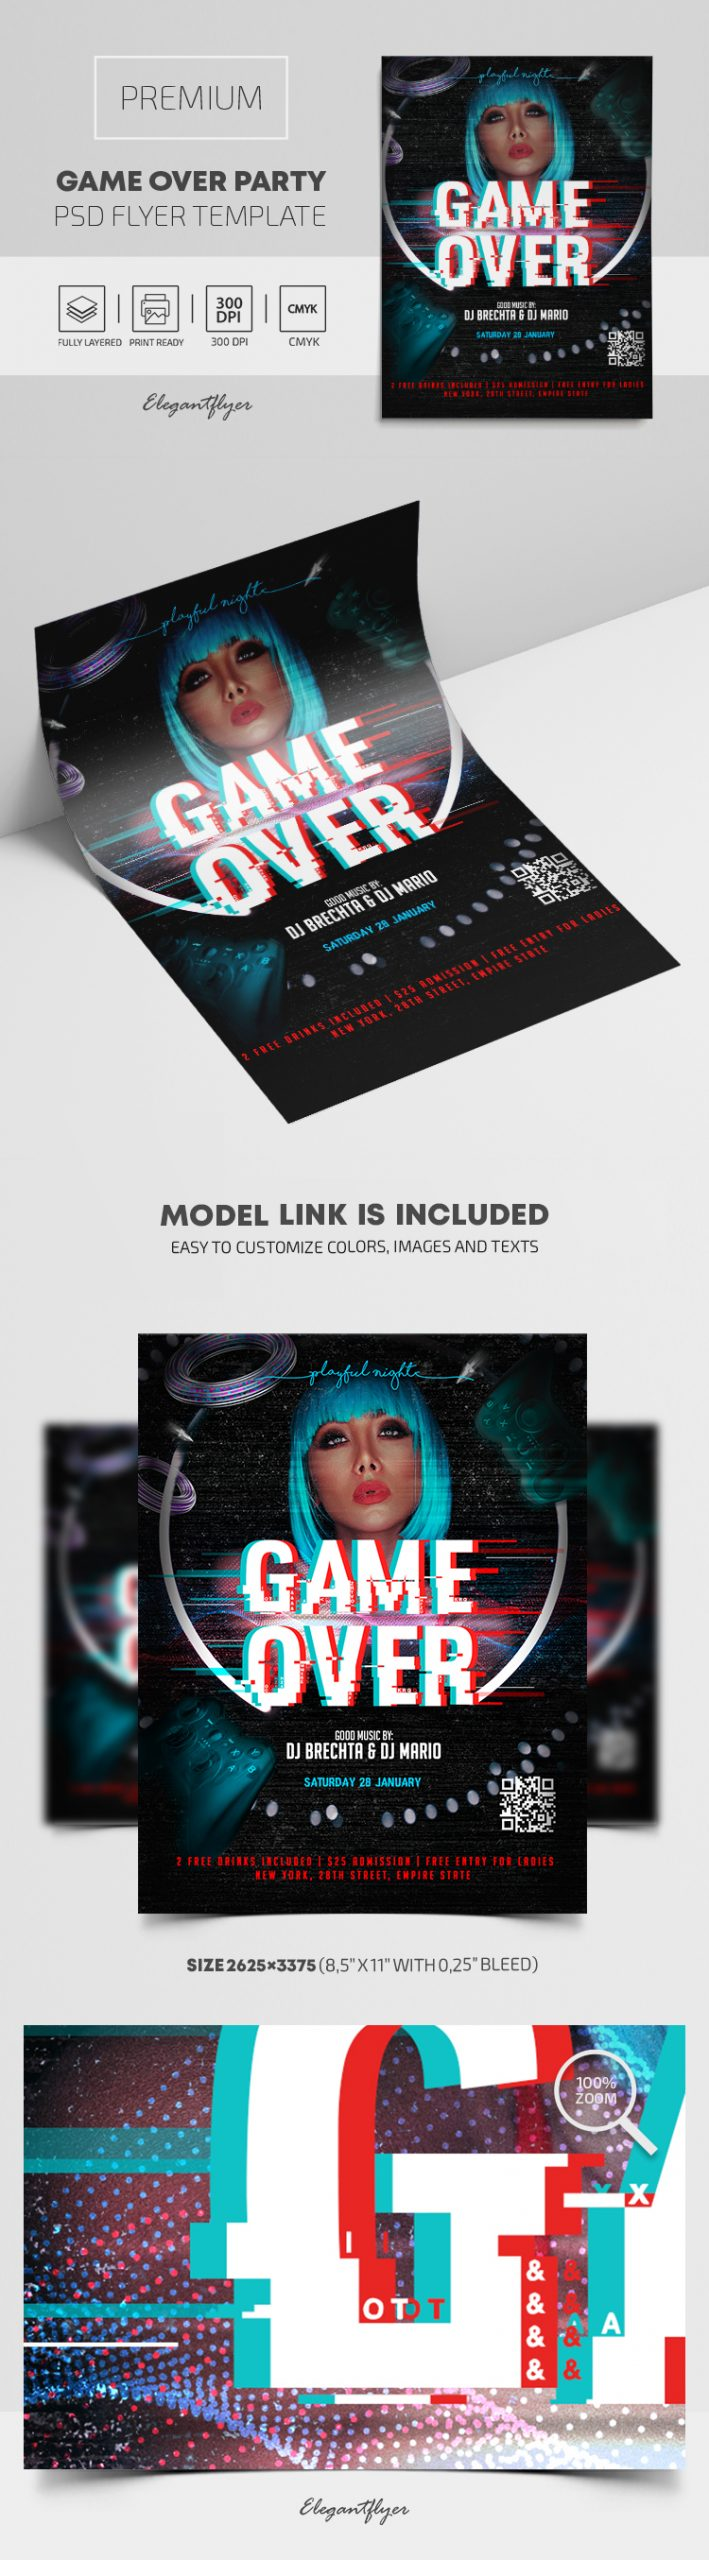 Game Over Party – Premium PSD Flyer Template